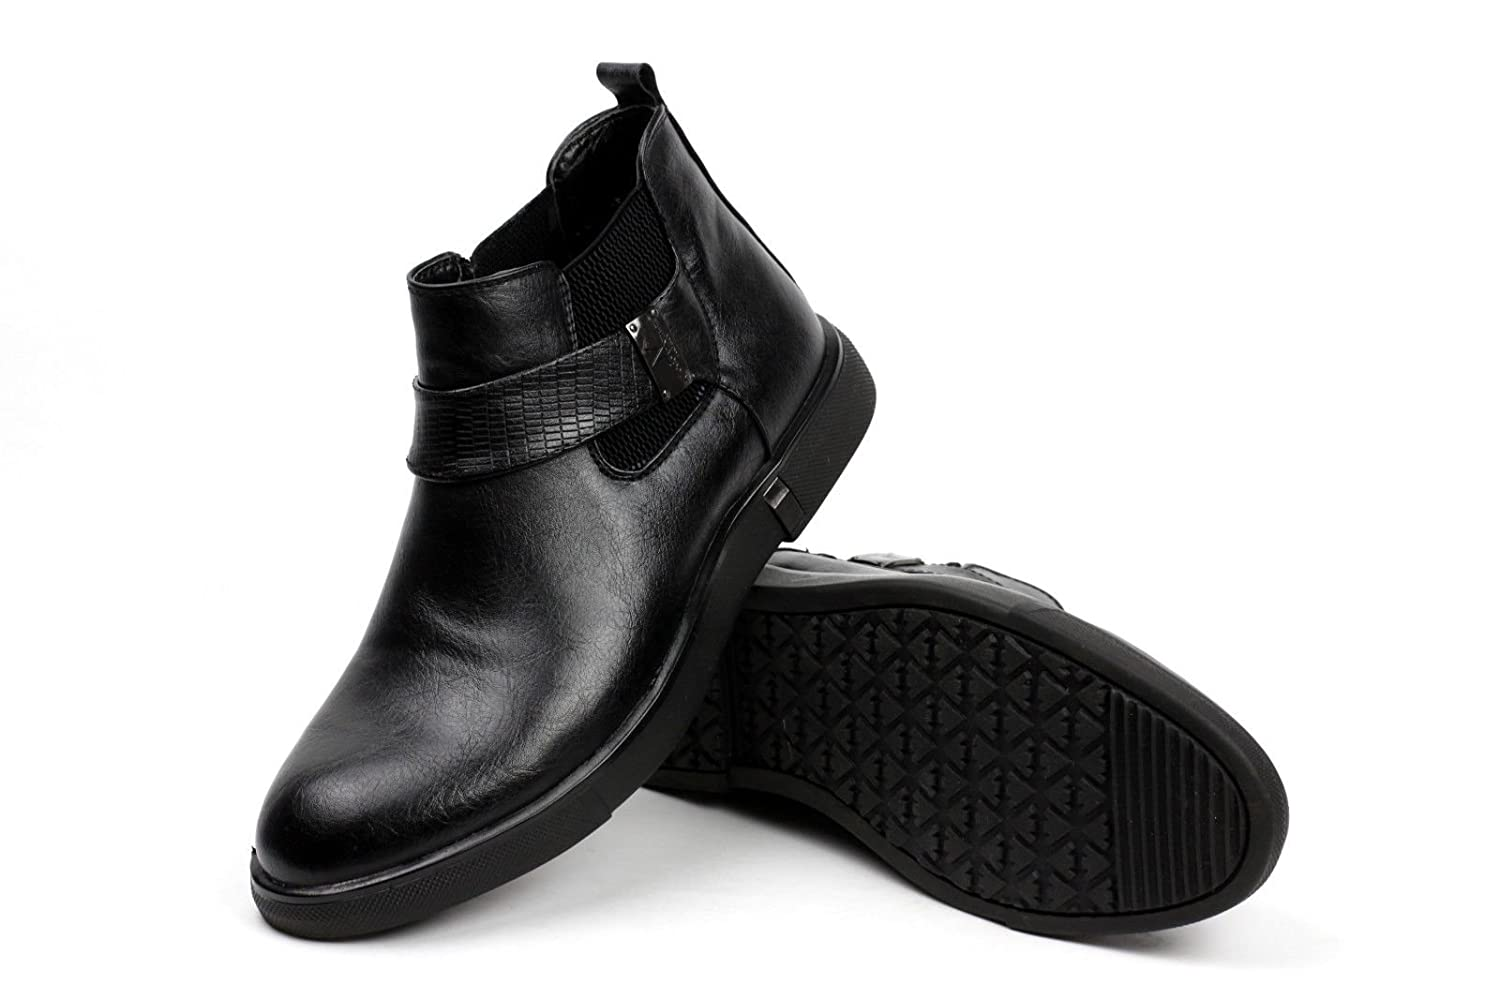 JAS Mens Biker Smart Slip On Chelsea Ankle Retro Boots Casual Work Shoes:  Amazon.co.uk: Shoes & Bags